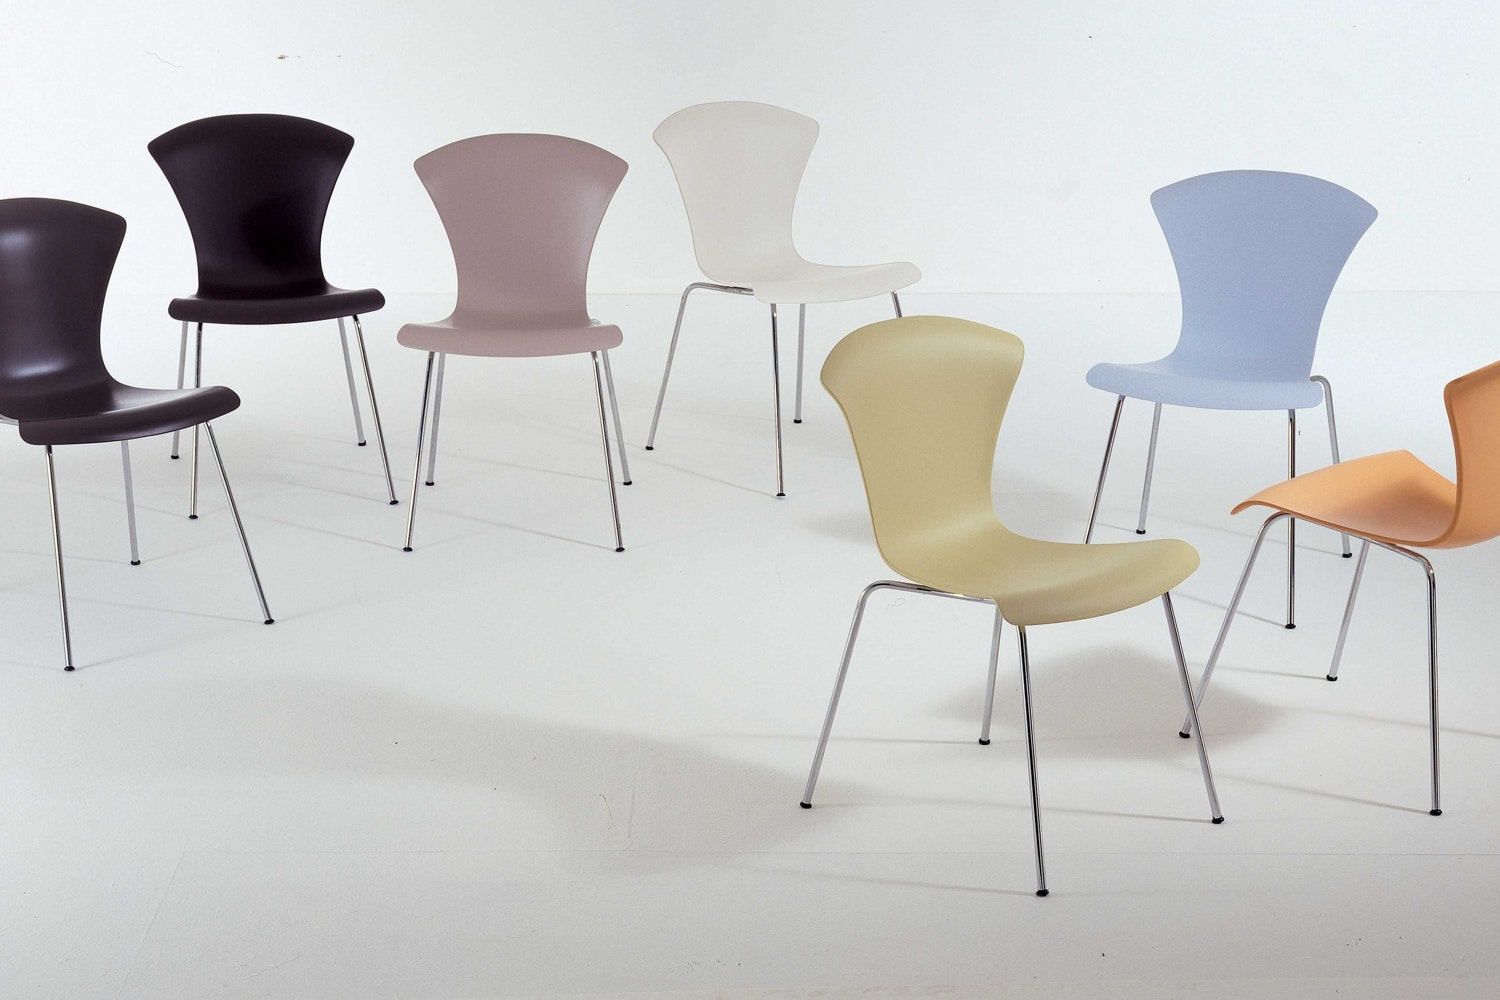 Nihau Chair by Vico Magistretti for Kartell